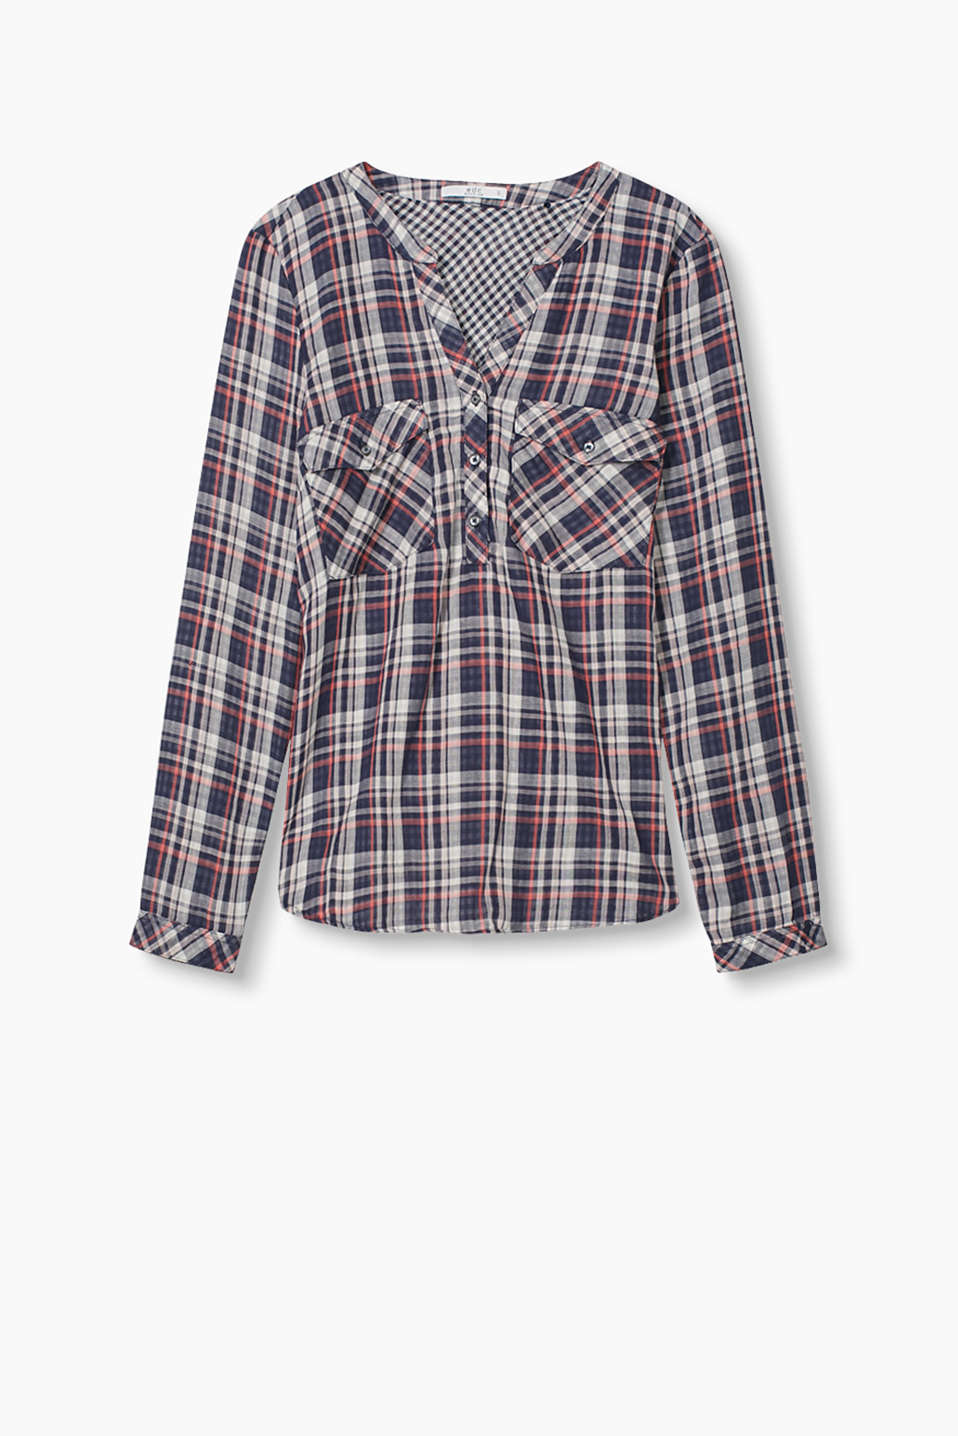 Soft, double face blouse with two different check patterns